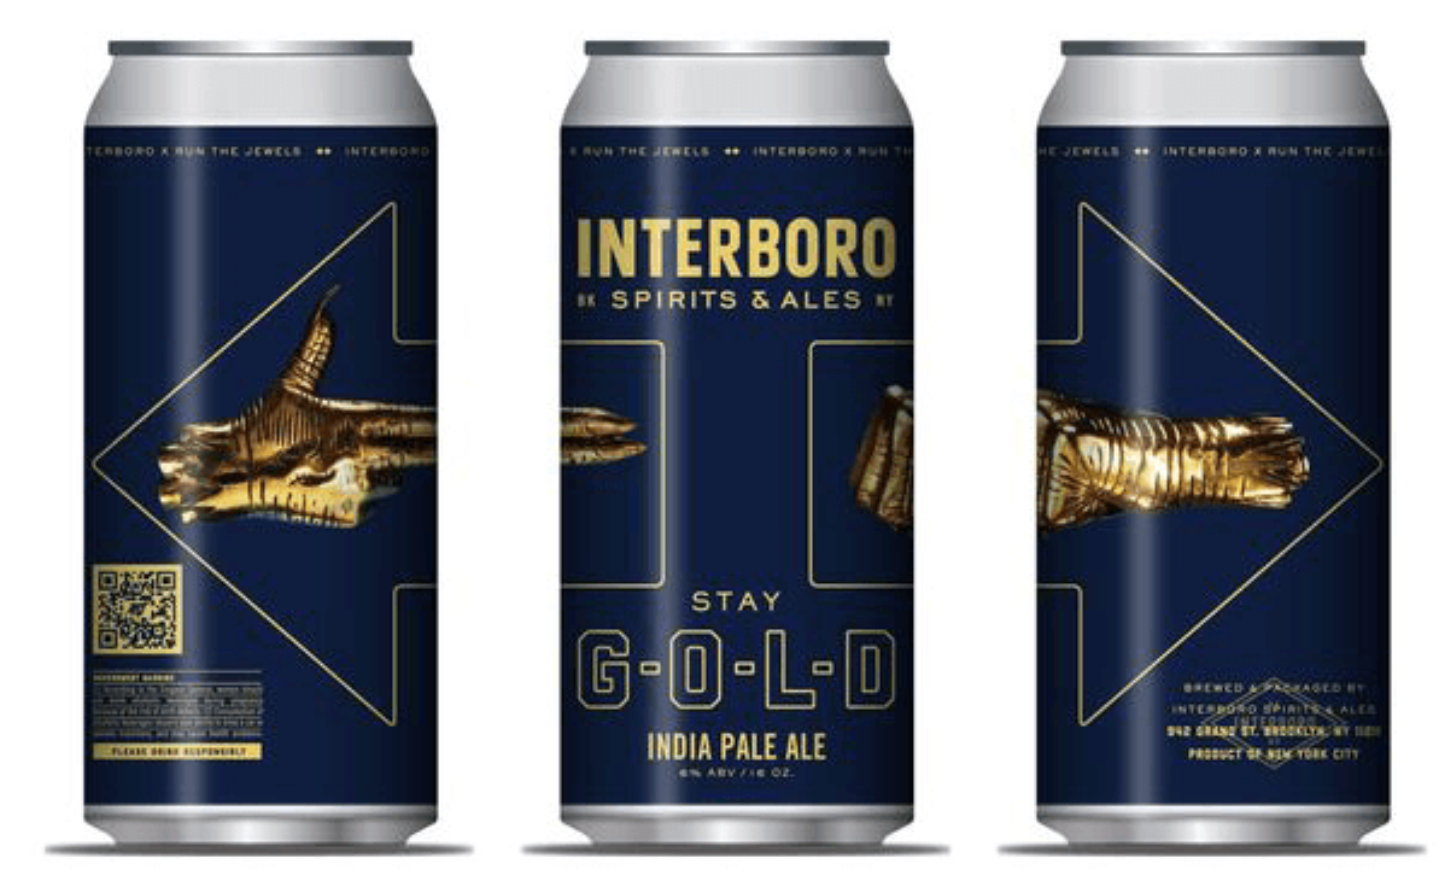 Interboro and Run the Jewels' Stay Gold IPA